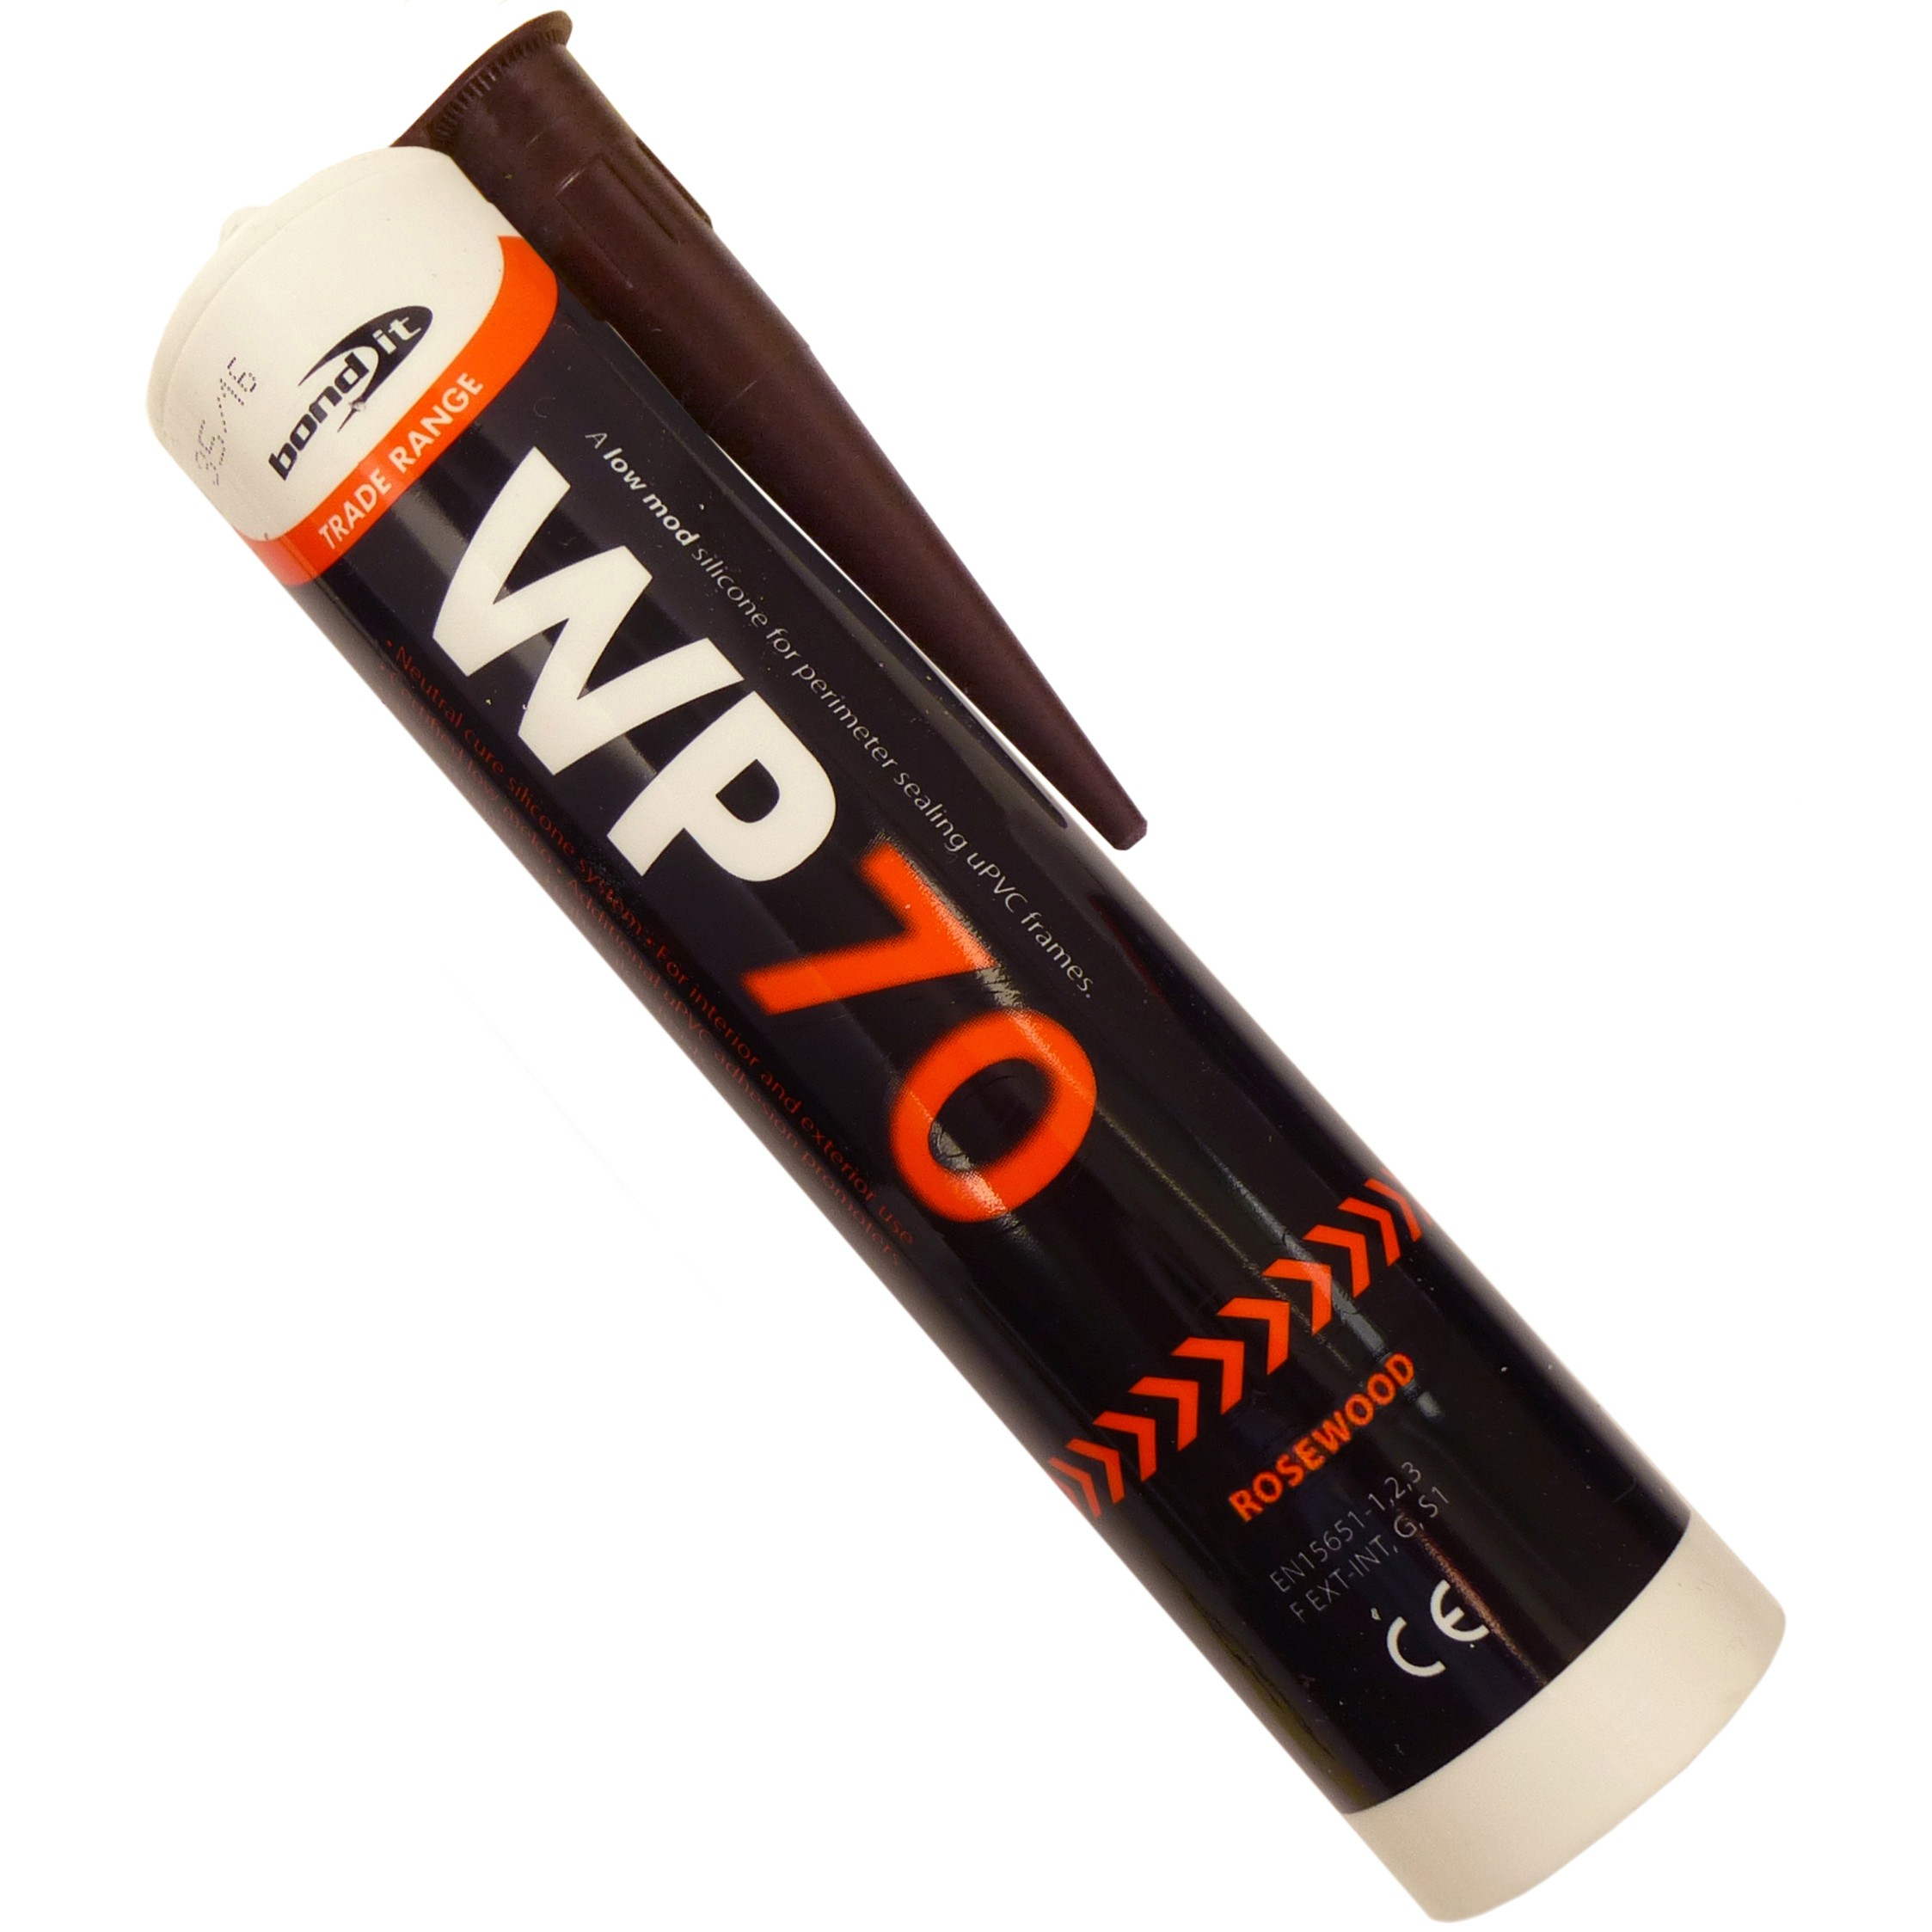 Bond It WP70 Oxime Low Modulus Silicone - Rosewood, 310ml